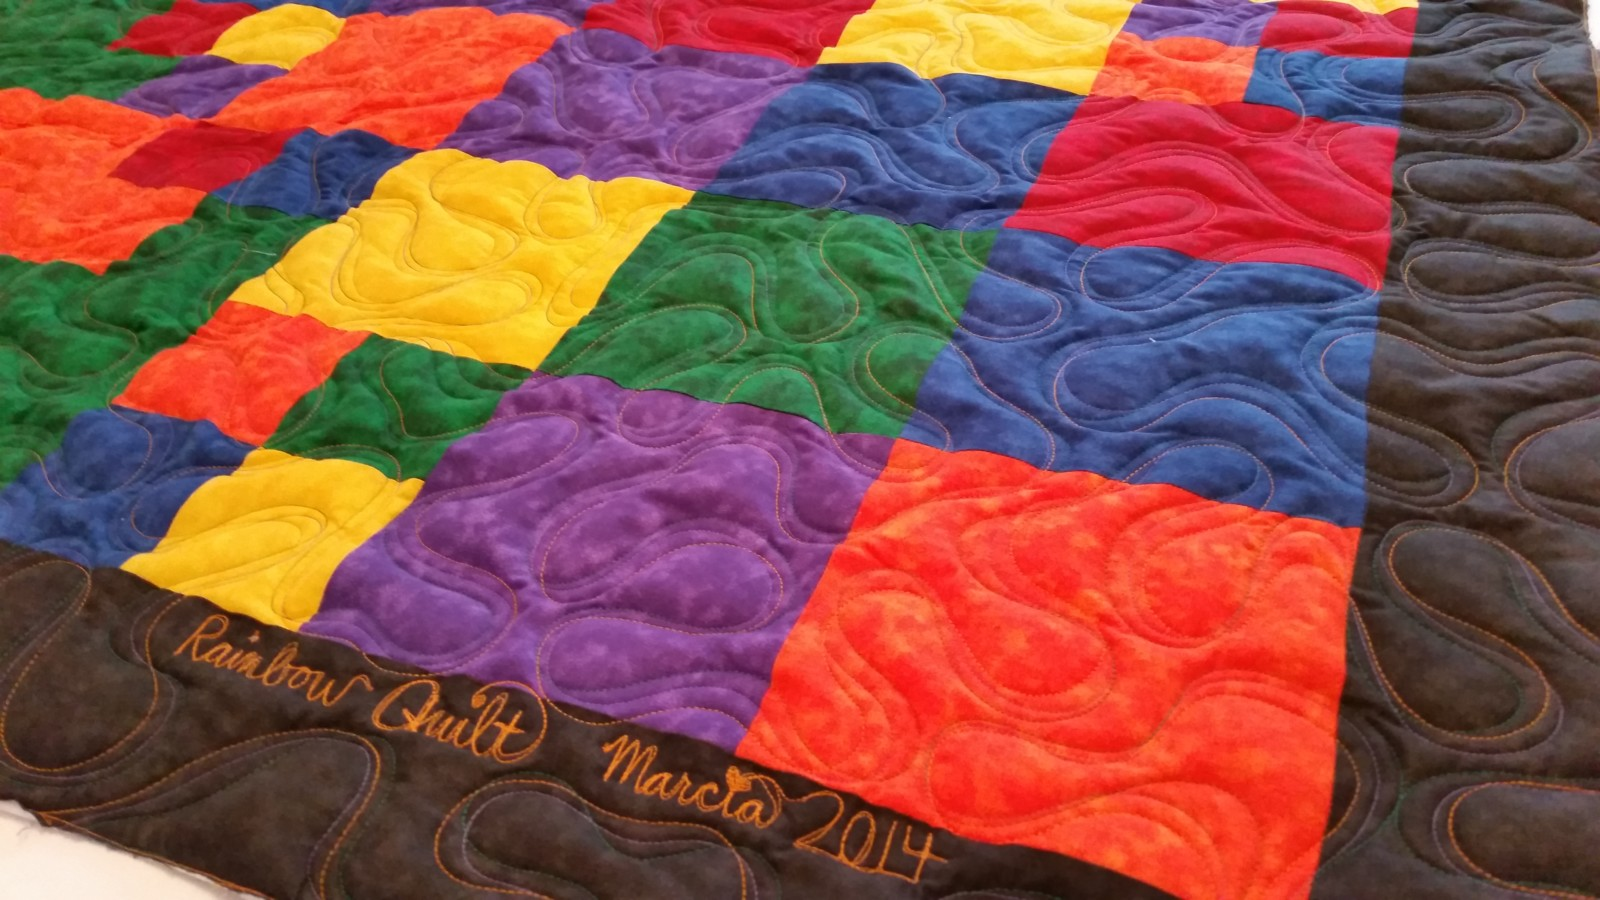 Marcia's Crafty Sewing and Quilting